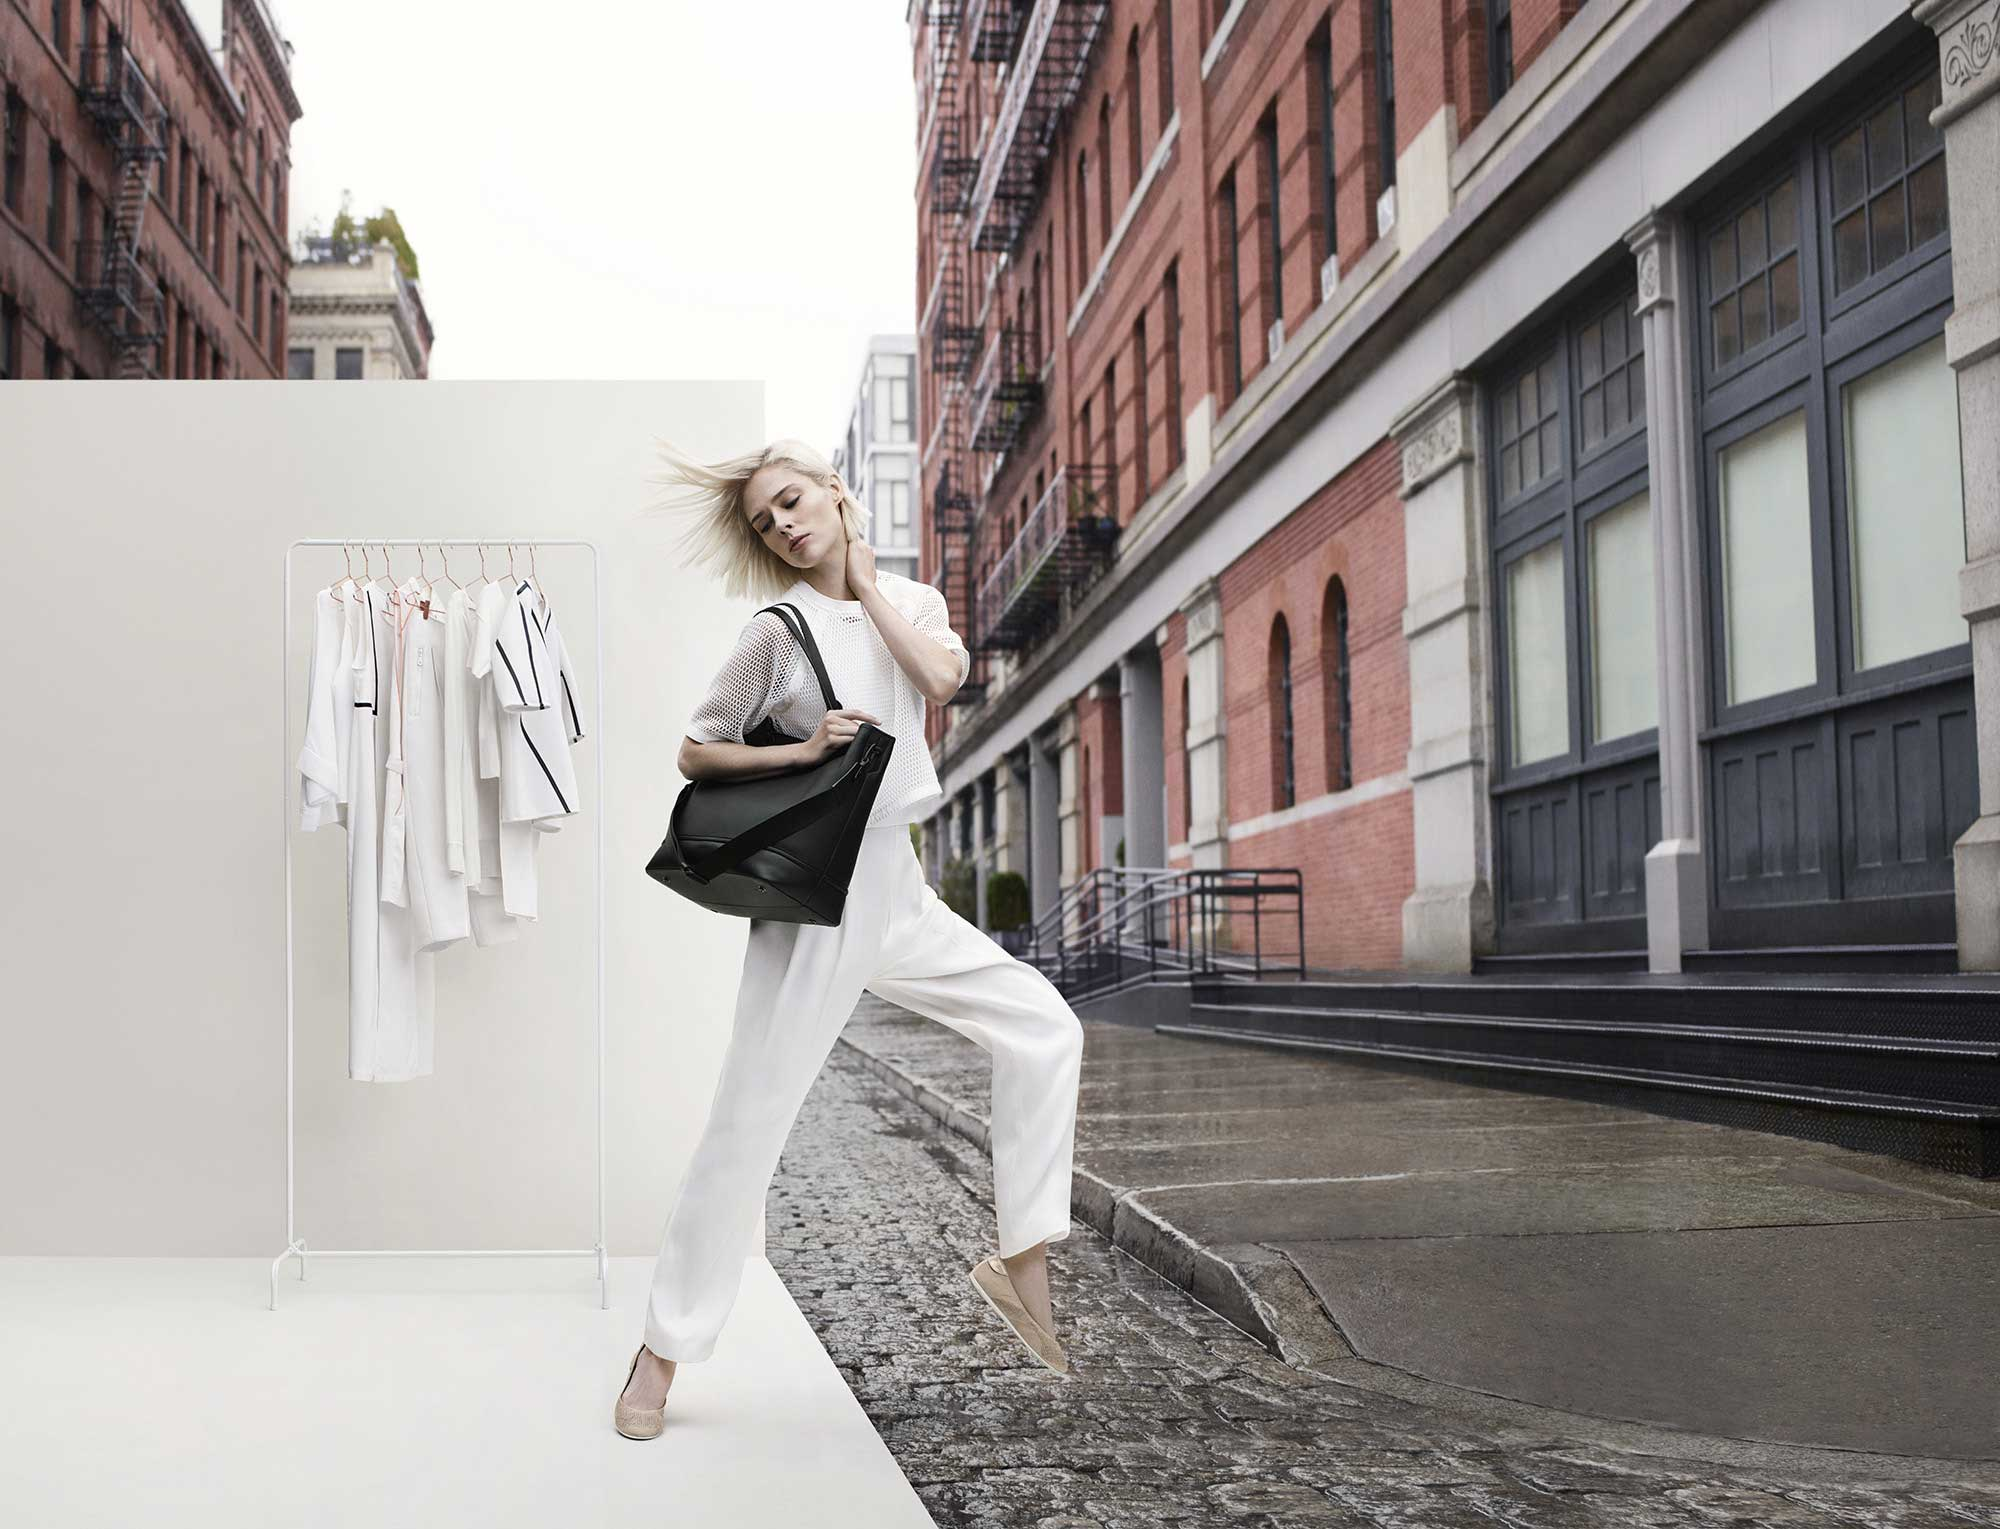 cole-haan-studiogrand-coco-rocha-model-owner-director-of-nomad-management